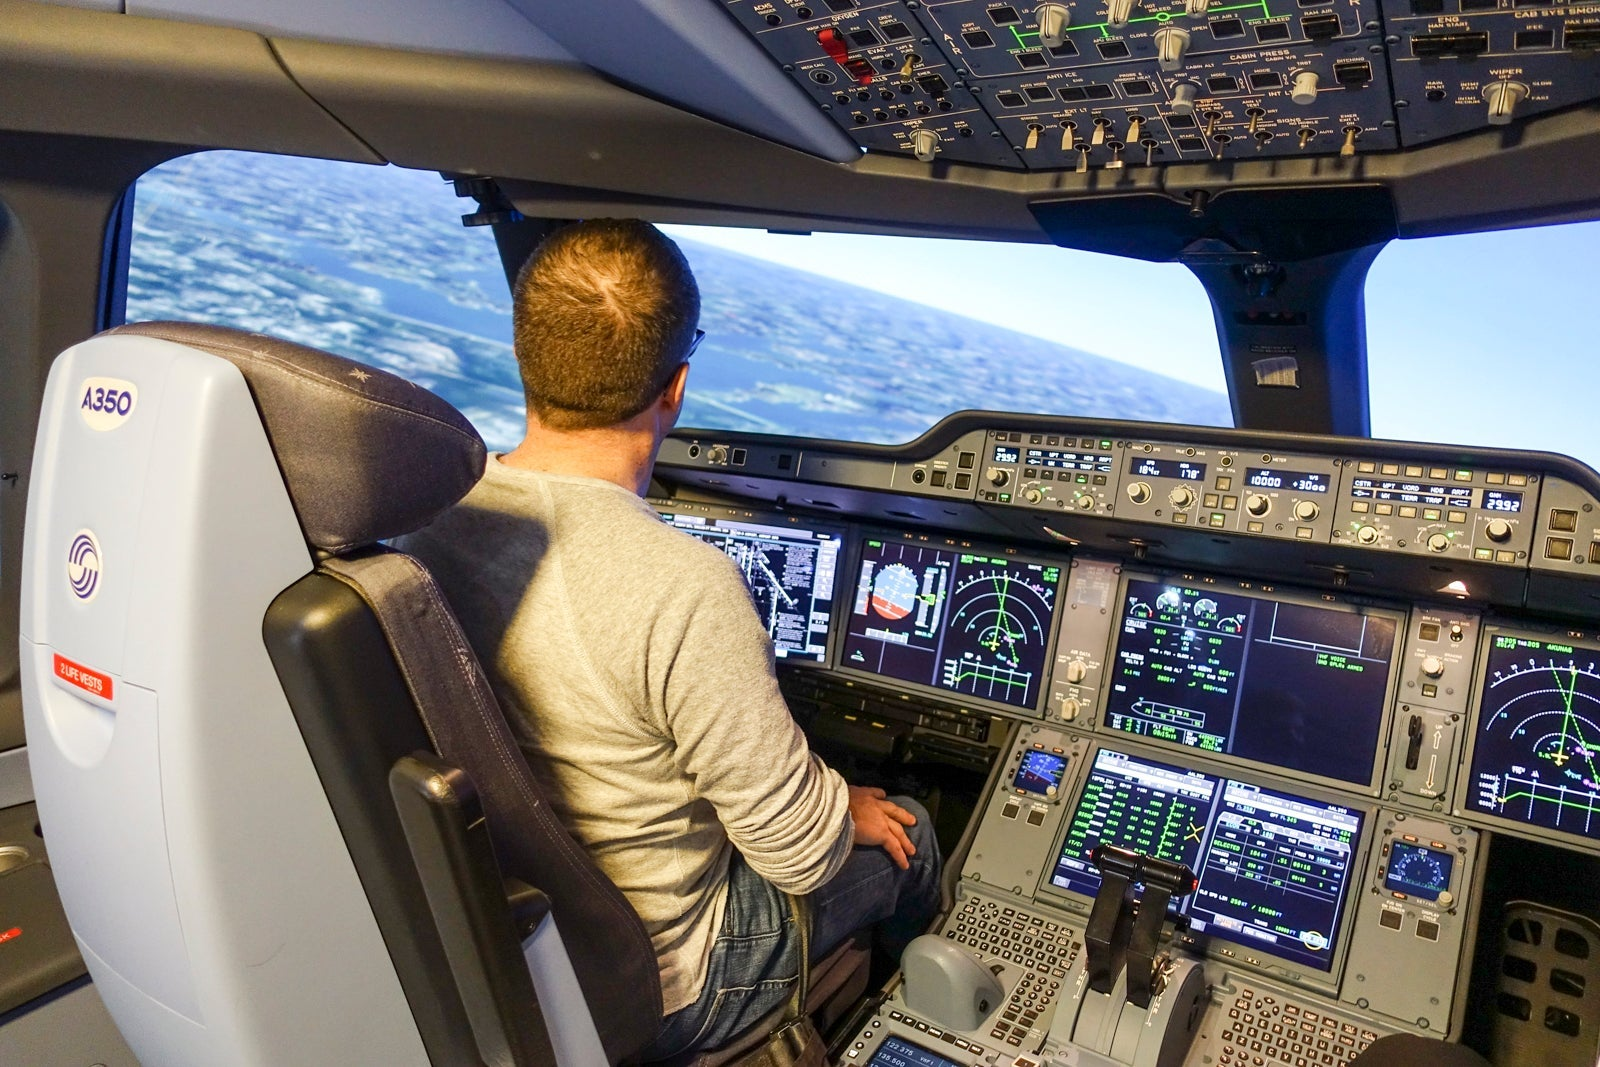 �Our job is on the line every 6 months� � Inside the pilot�s simulator check